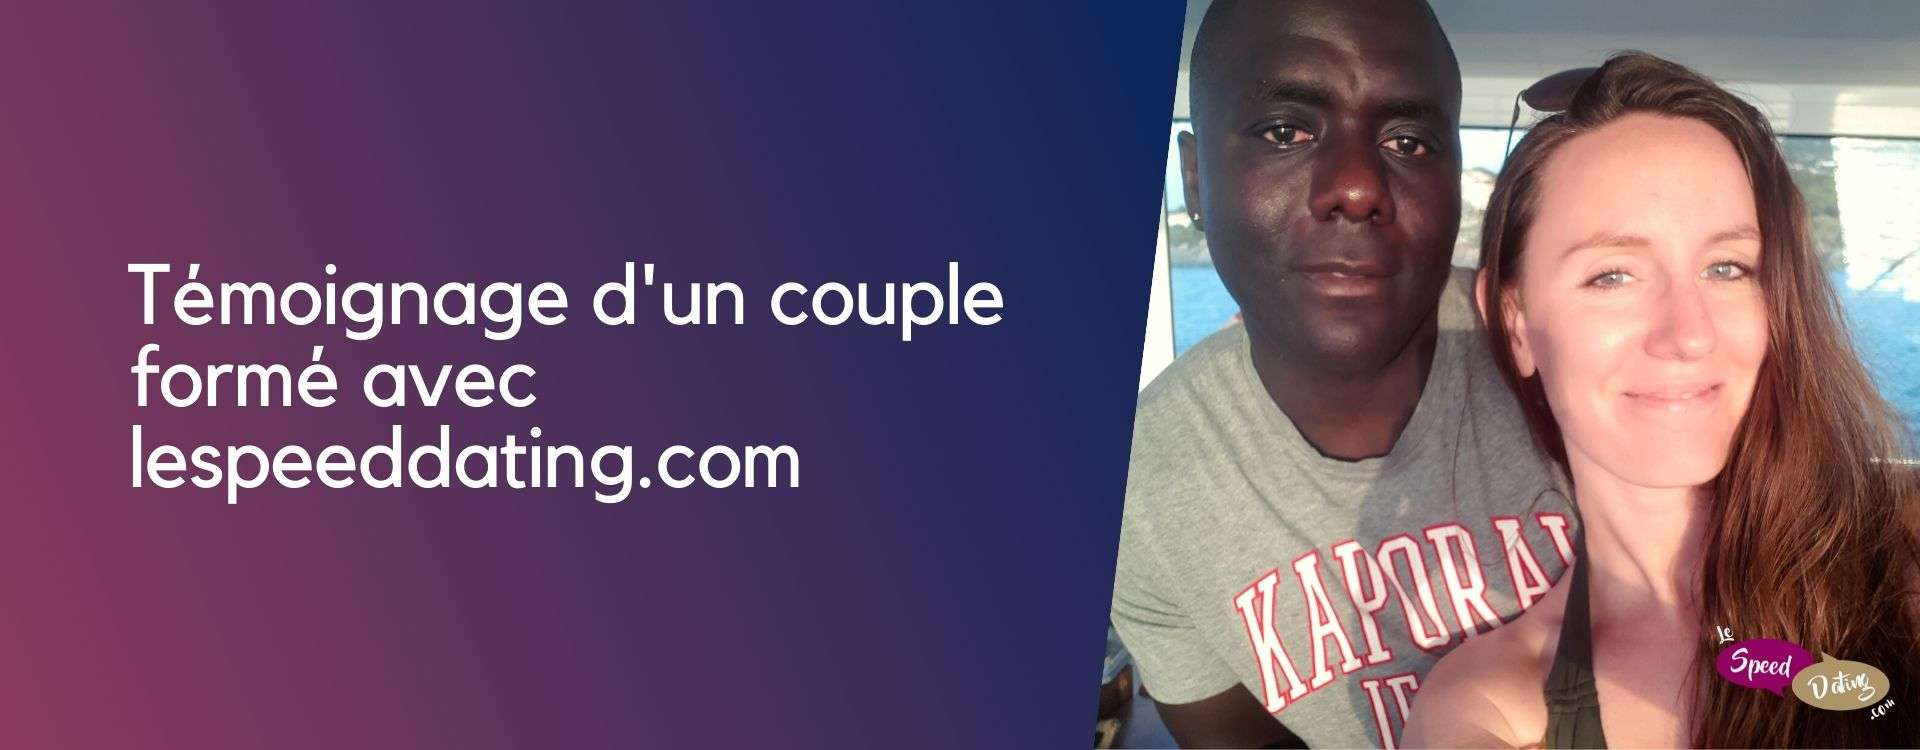 Un couple formé en Speed dating : témoignage de Stéphanie et Willy